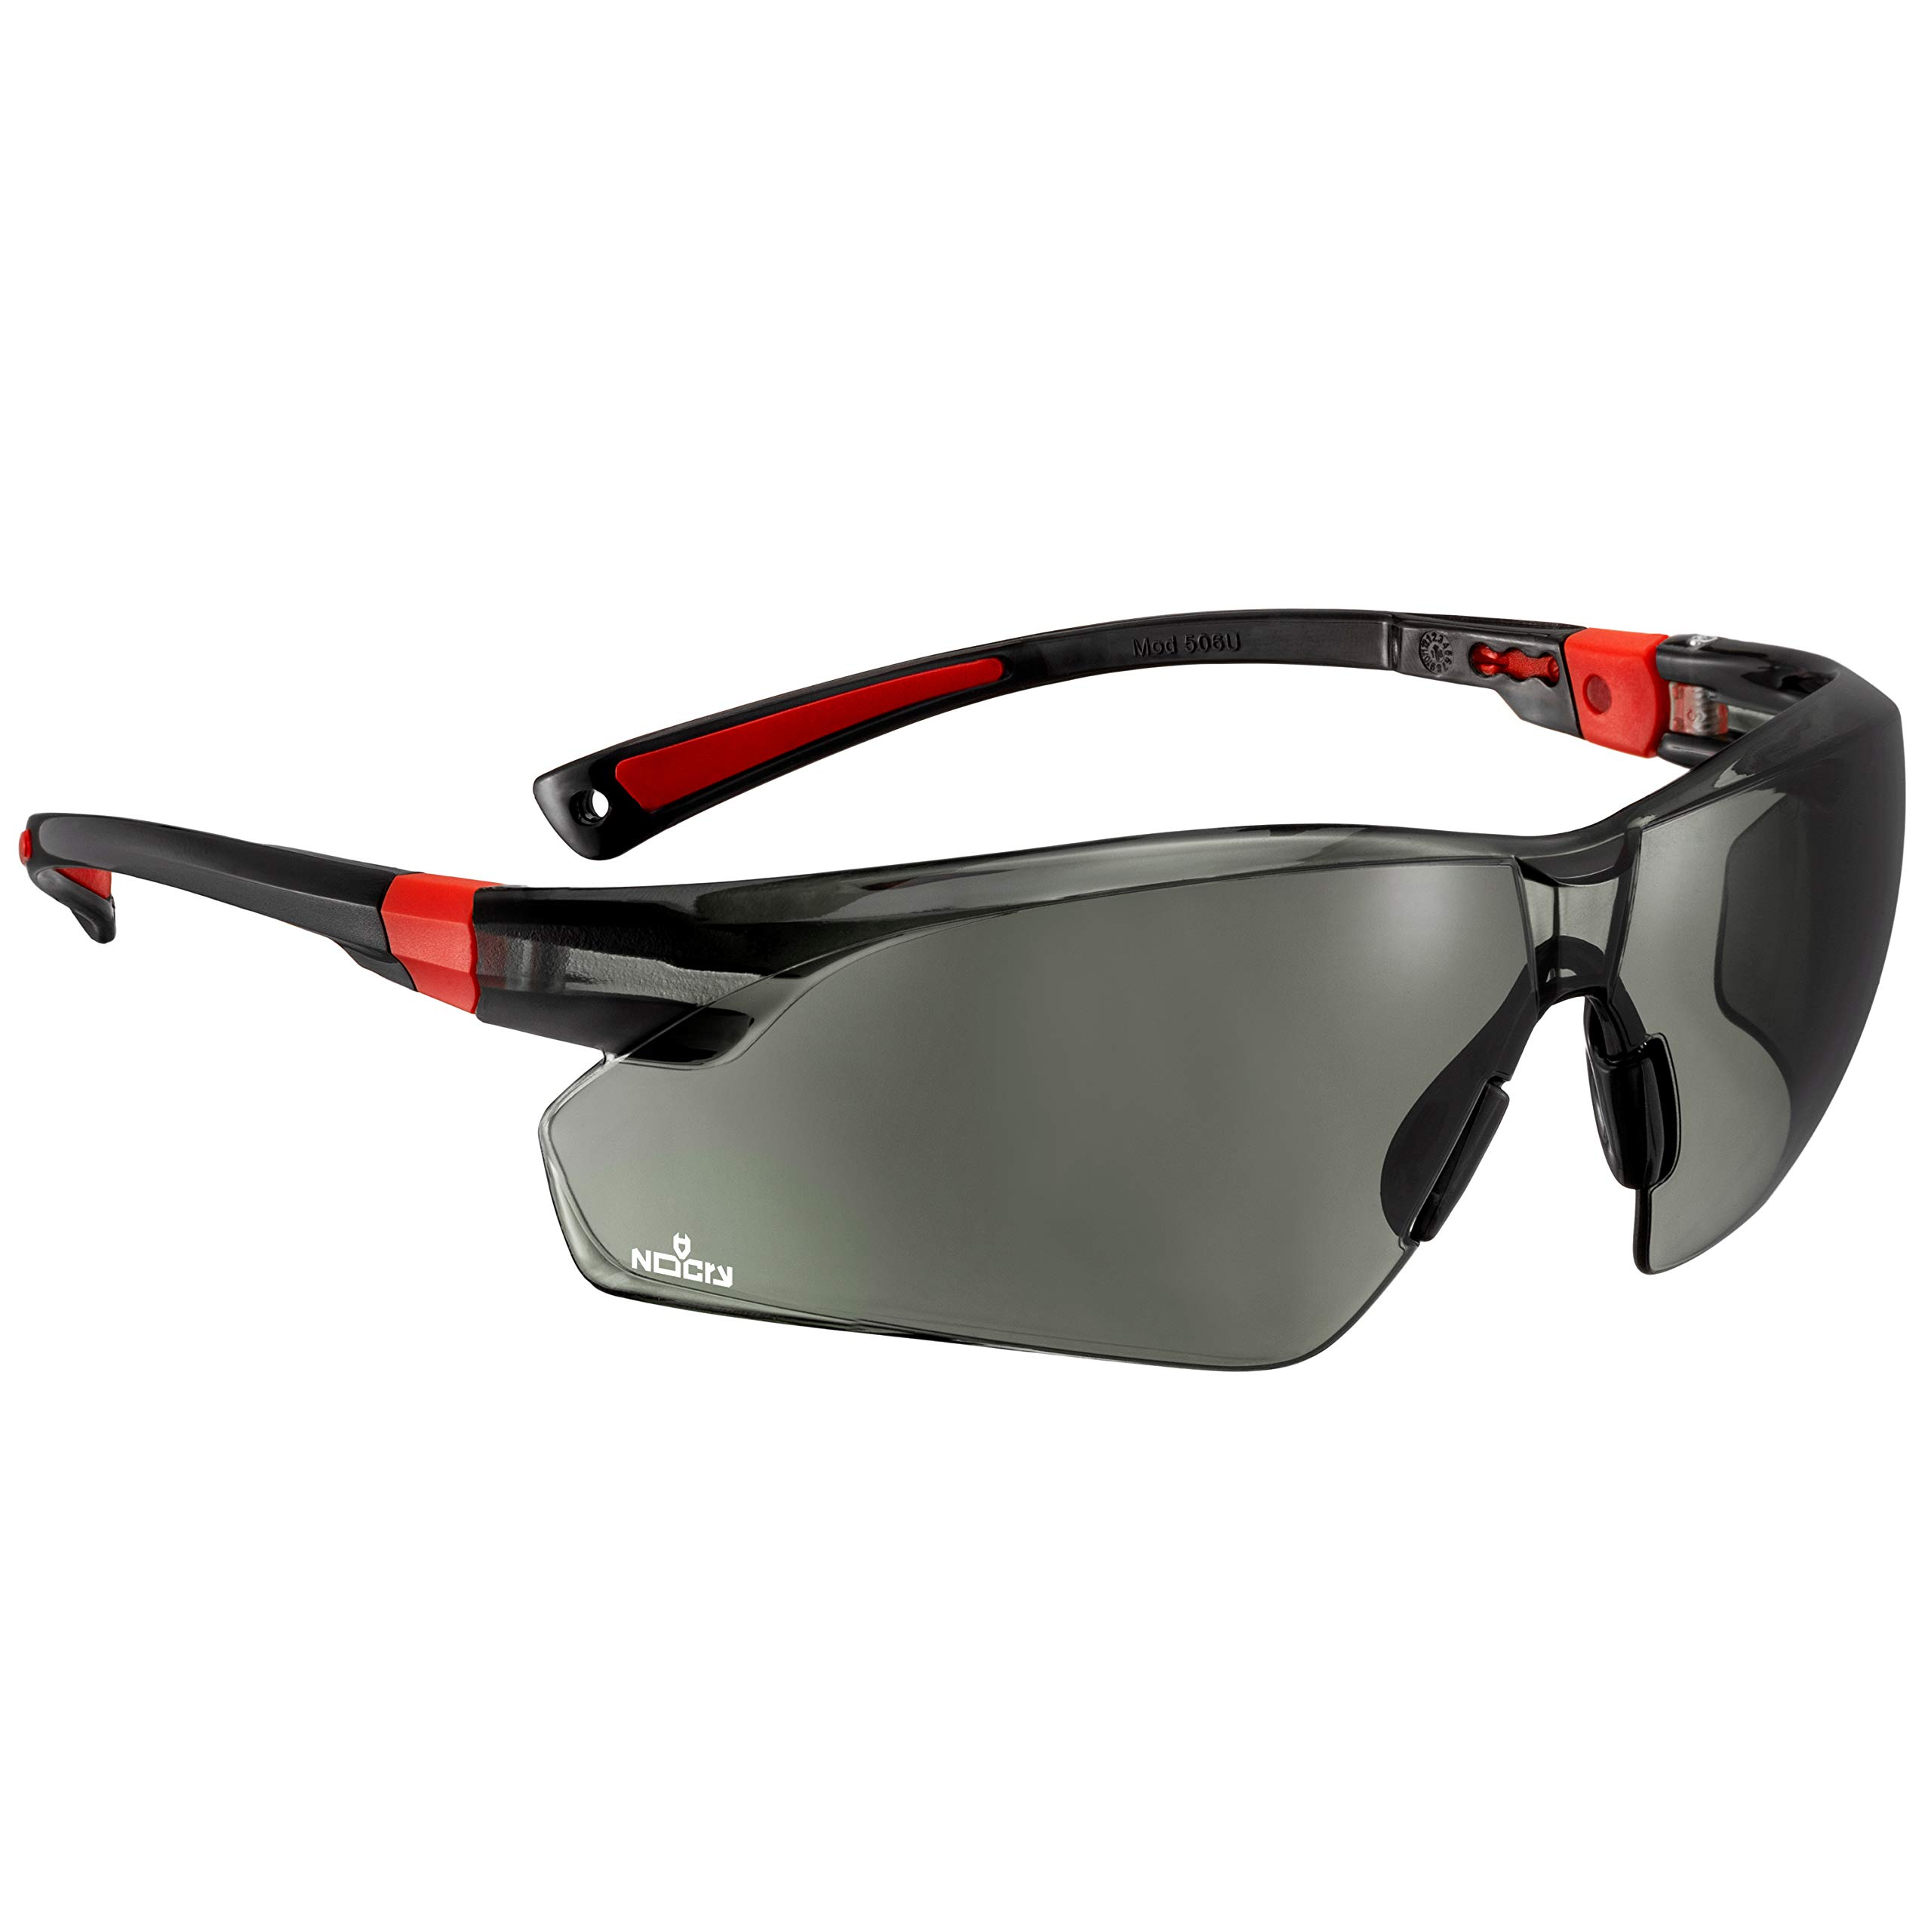 NoCry Work & Sports Safety Sunglasses - with Green Tinted Anti Scratch Wrap-Around Lenses, Non-Slip Grips, UV 400 Protection, Adjustable Fit, Black & Red Frames